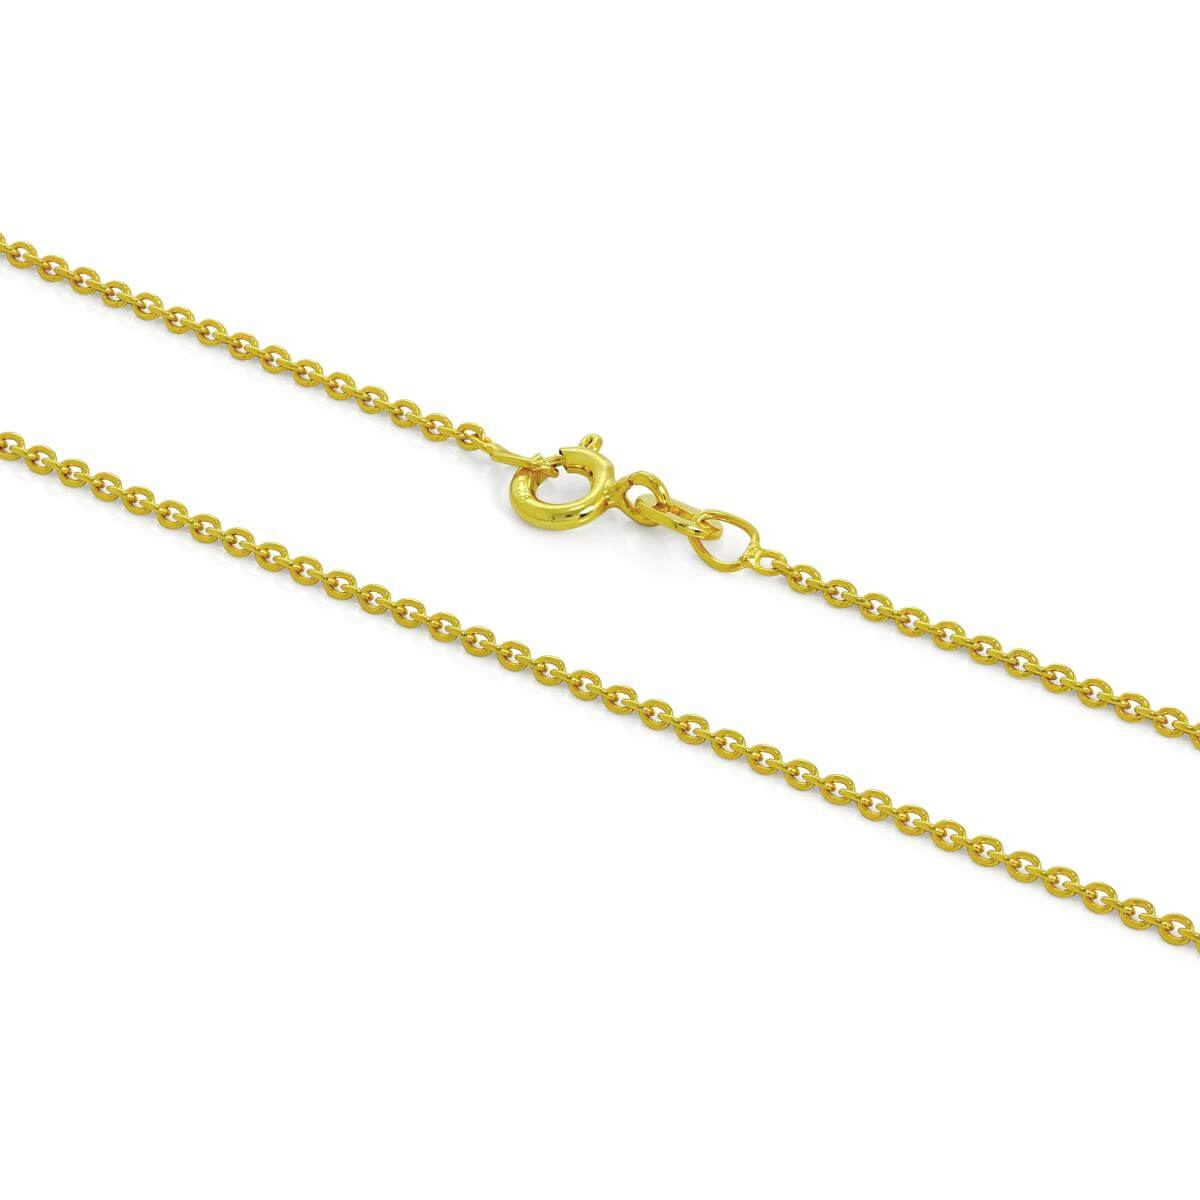 Gold Plated Sterling Silver 1mm Cable Chain 16 - 24 Inches